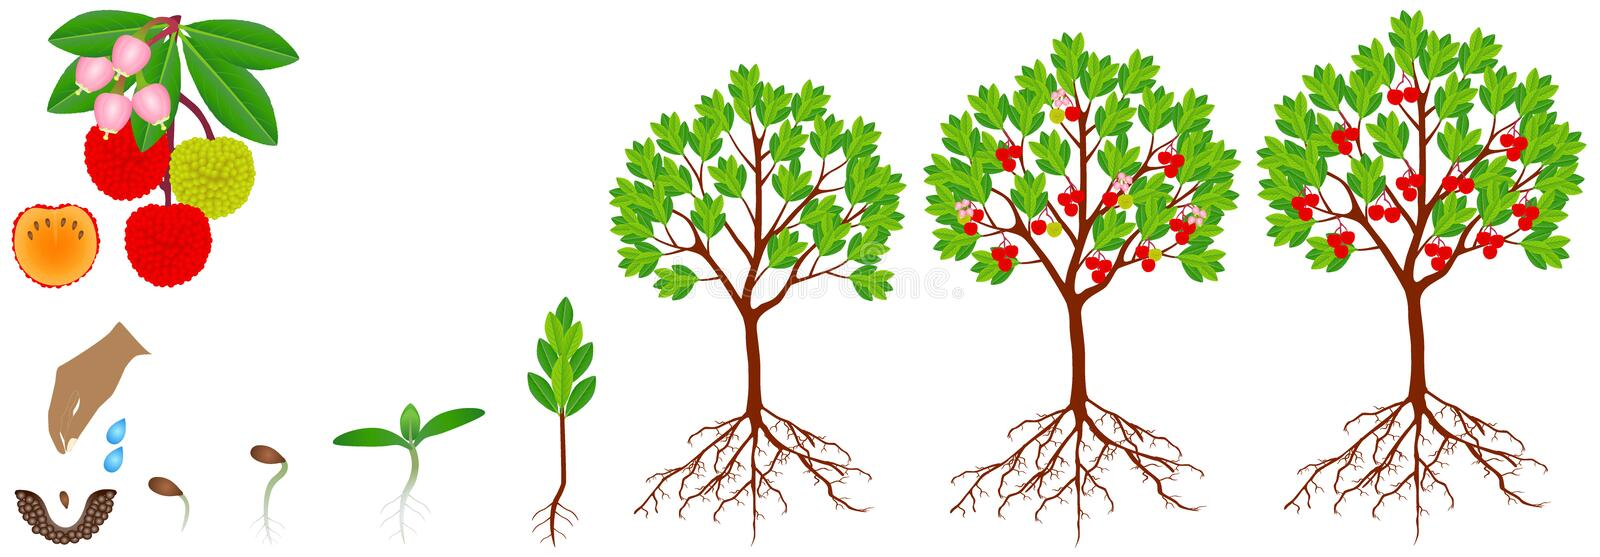 Cycle of growth of strawberry arbutus plant on a white background. royalty free stock photo